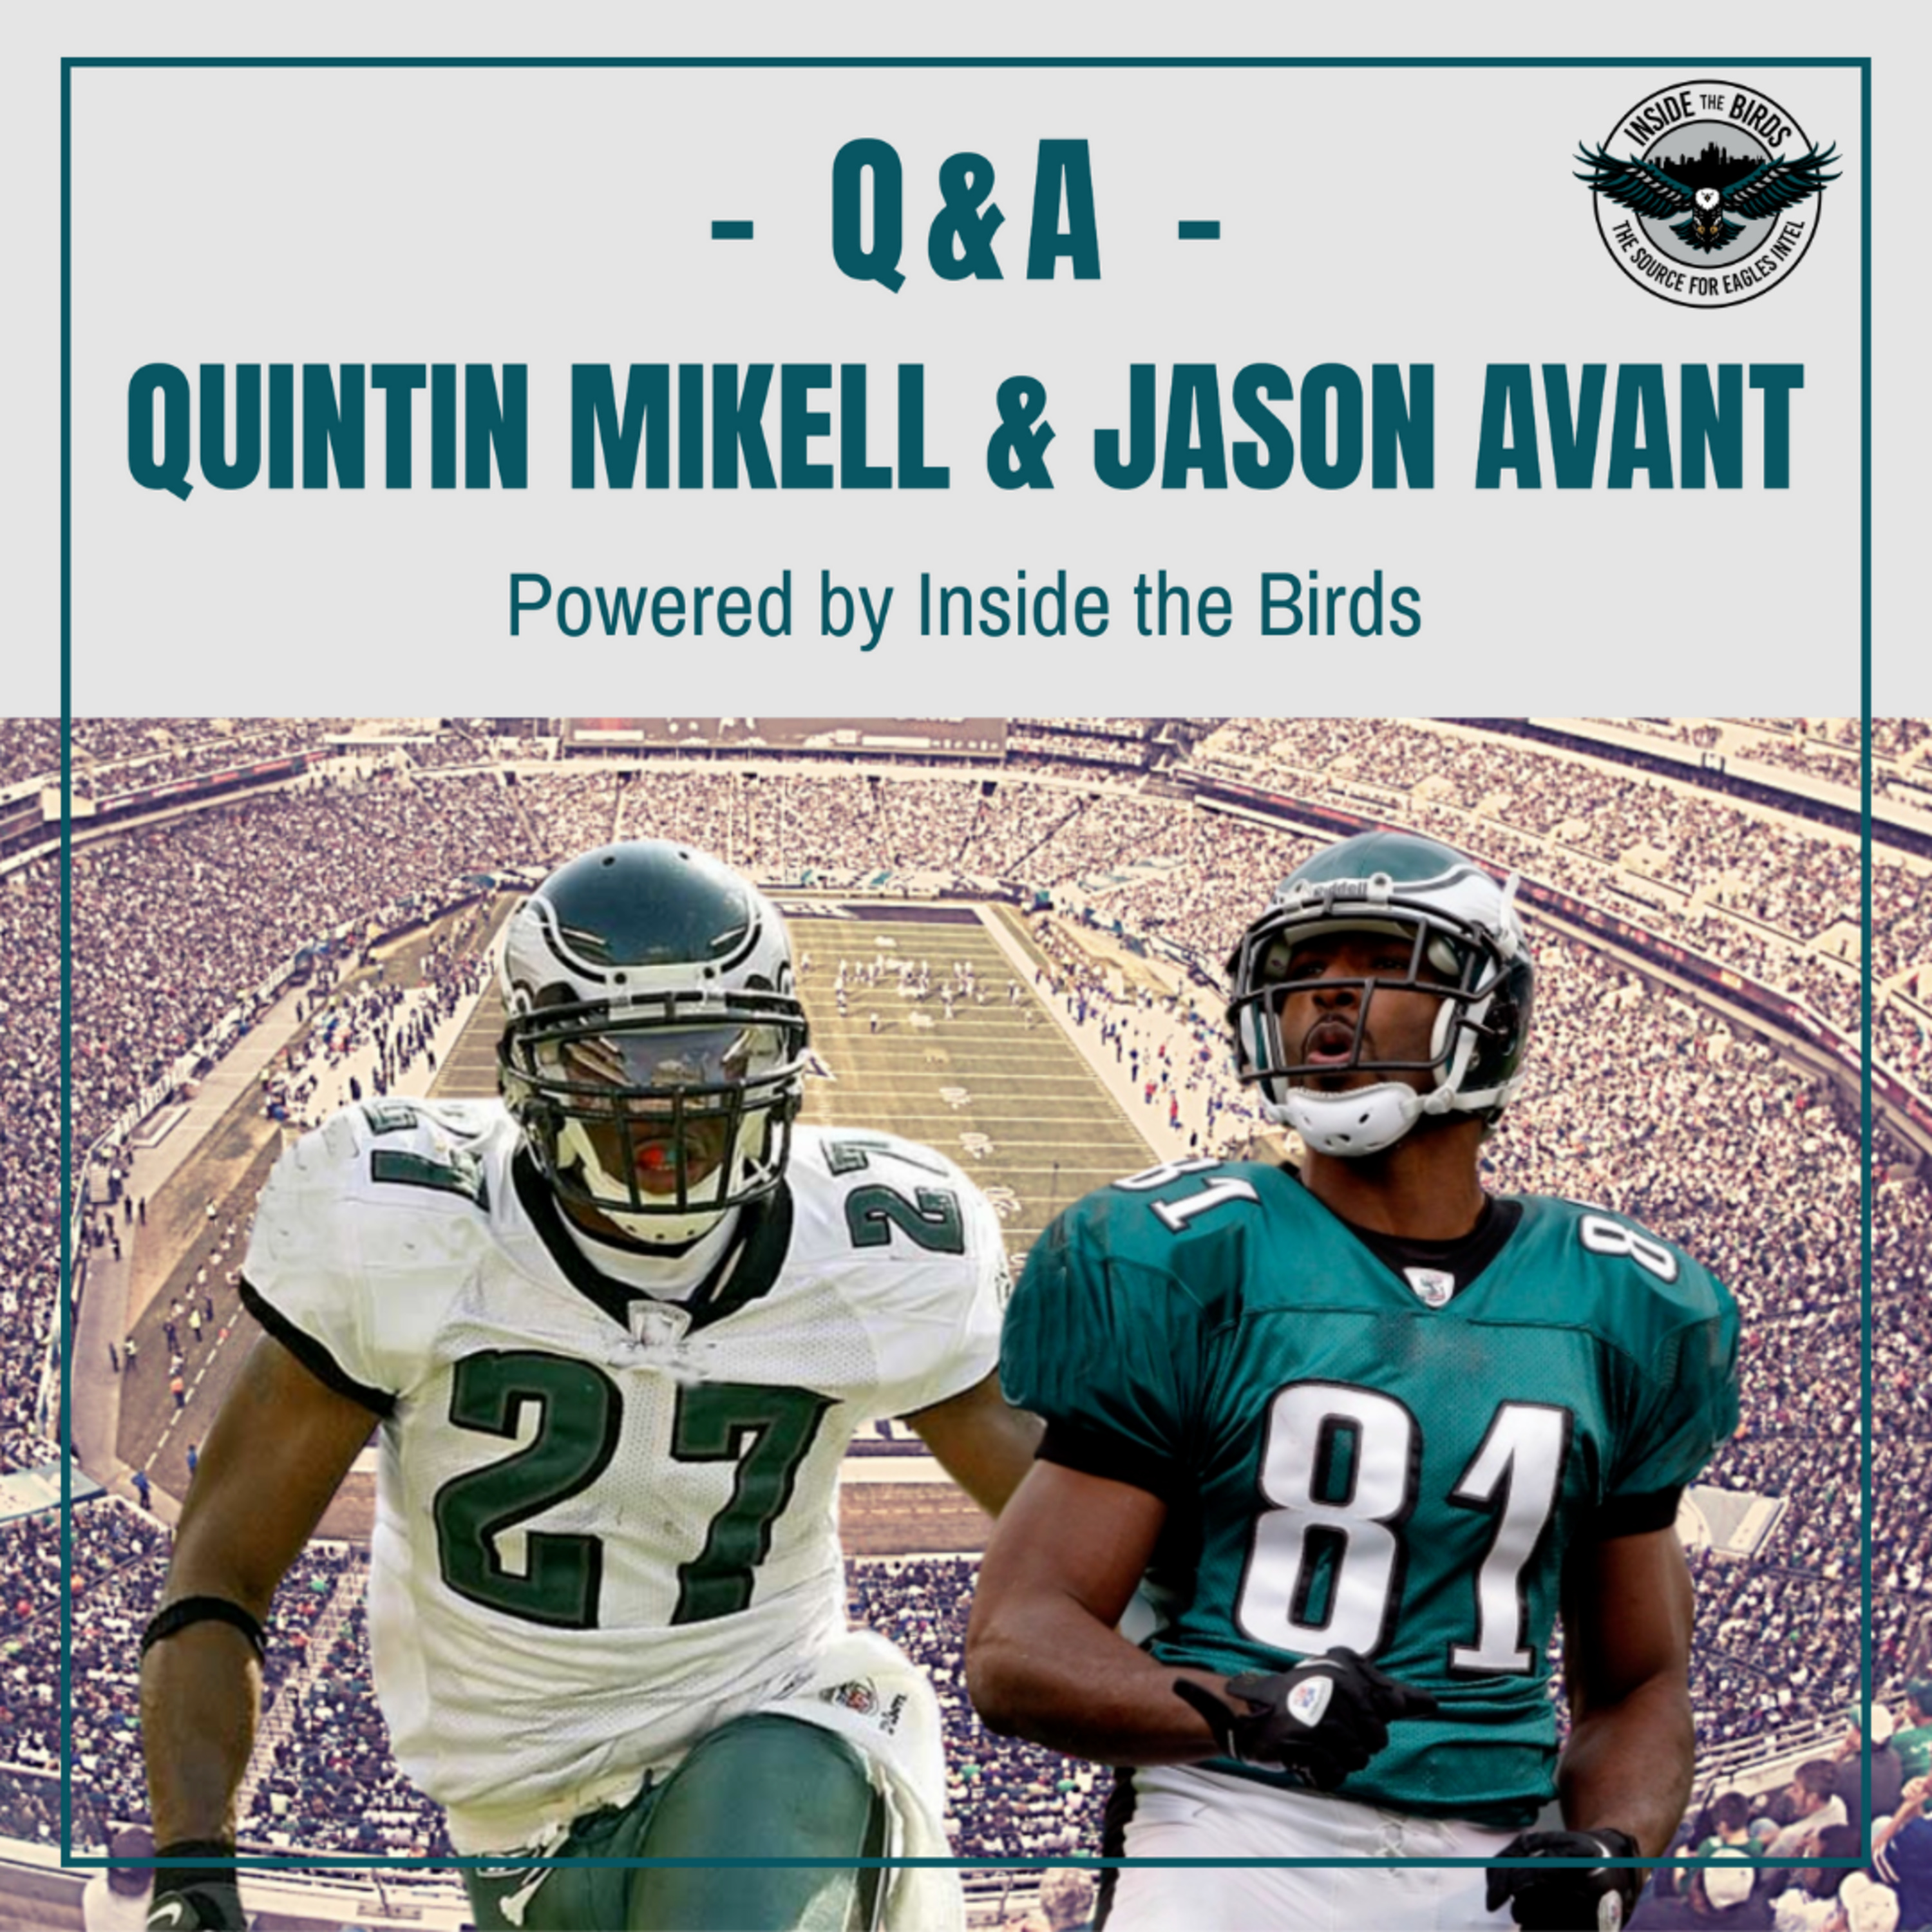 An (Almost) NFC East Preview | Old Heads vs. New Faces | Boomer Esiason, Innocent Bystander | Q&A With Quintin Mikell & Jason Avant